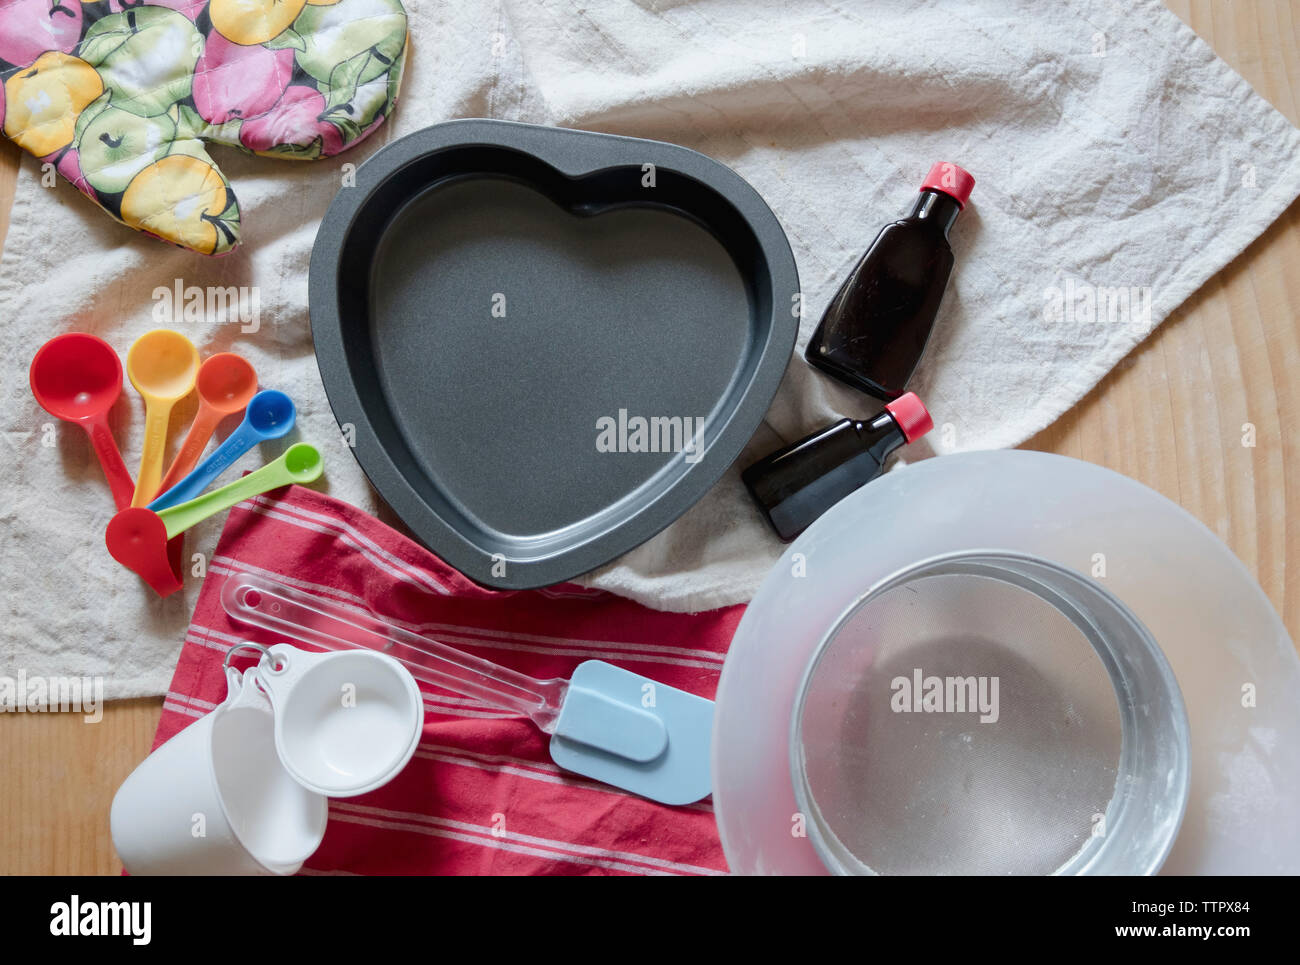 High angle view of various kitchen utensils on table - Stock Image